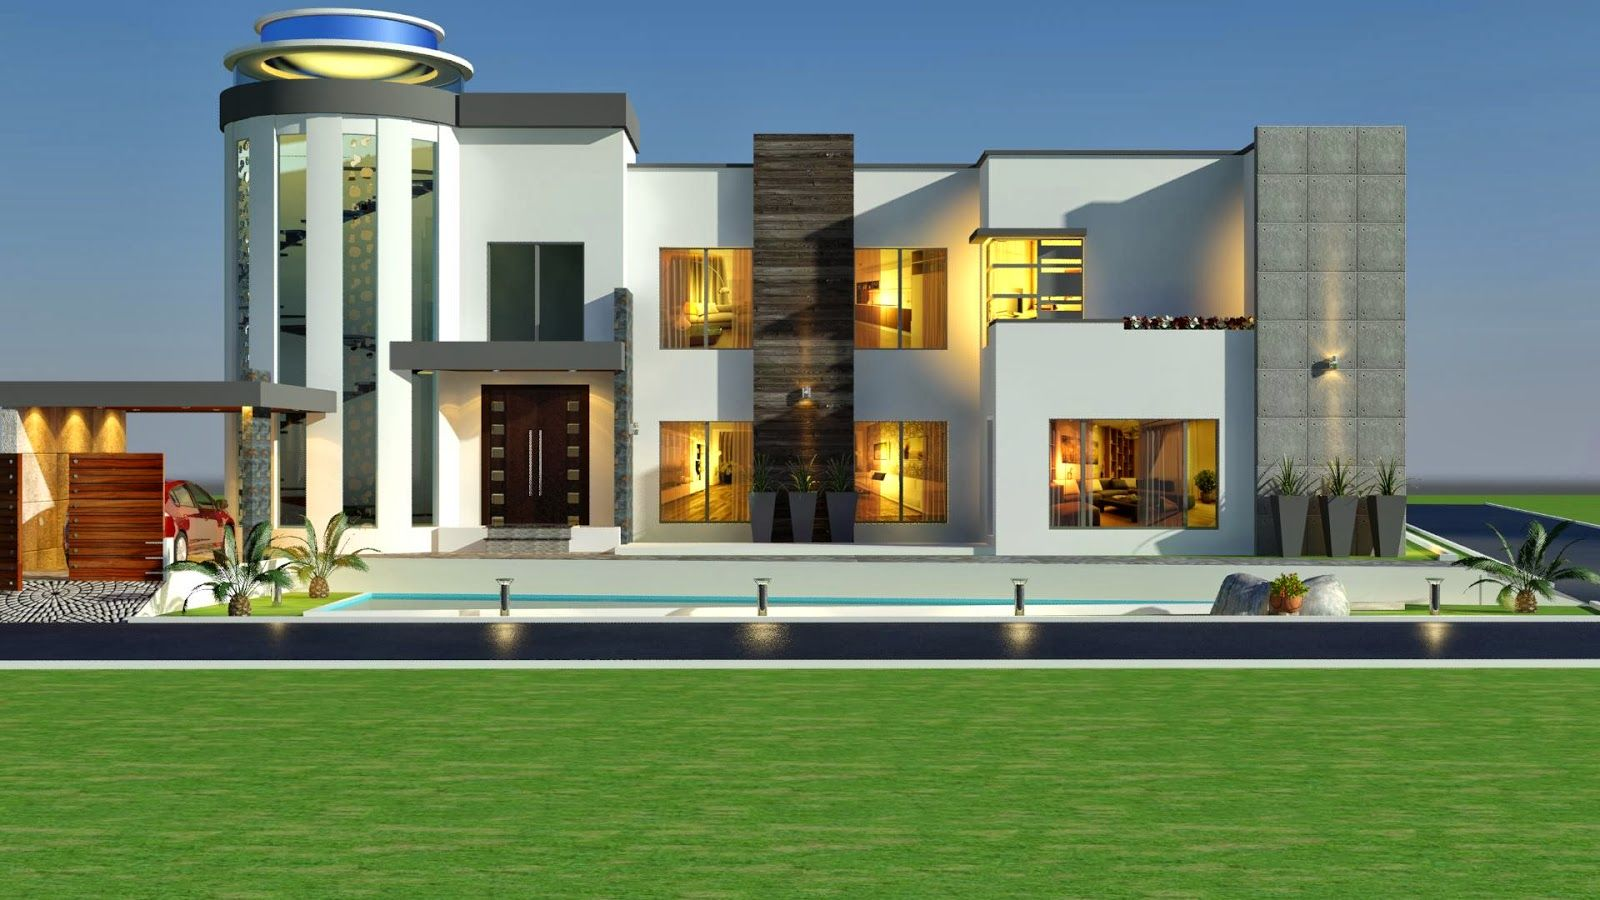 Villa house 2014 3d front elevation kanal modern for Modern house designs 3d